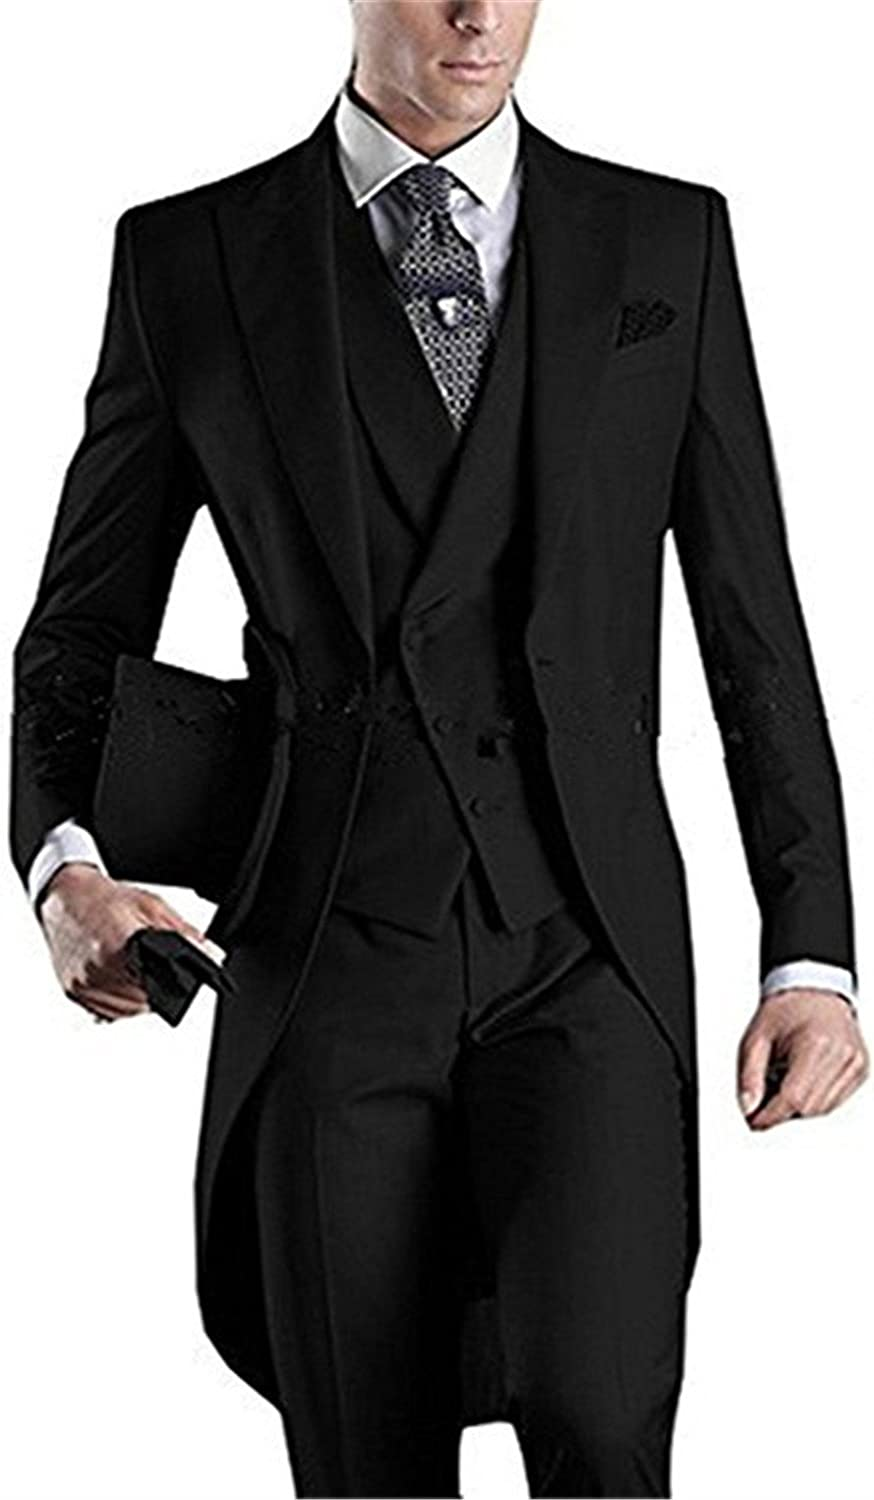 Onlylover Men's Luxury Tailcoat Formal Slim Fit 3 Piece Suit Dinner Jacket Swallow-Tailed Coat